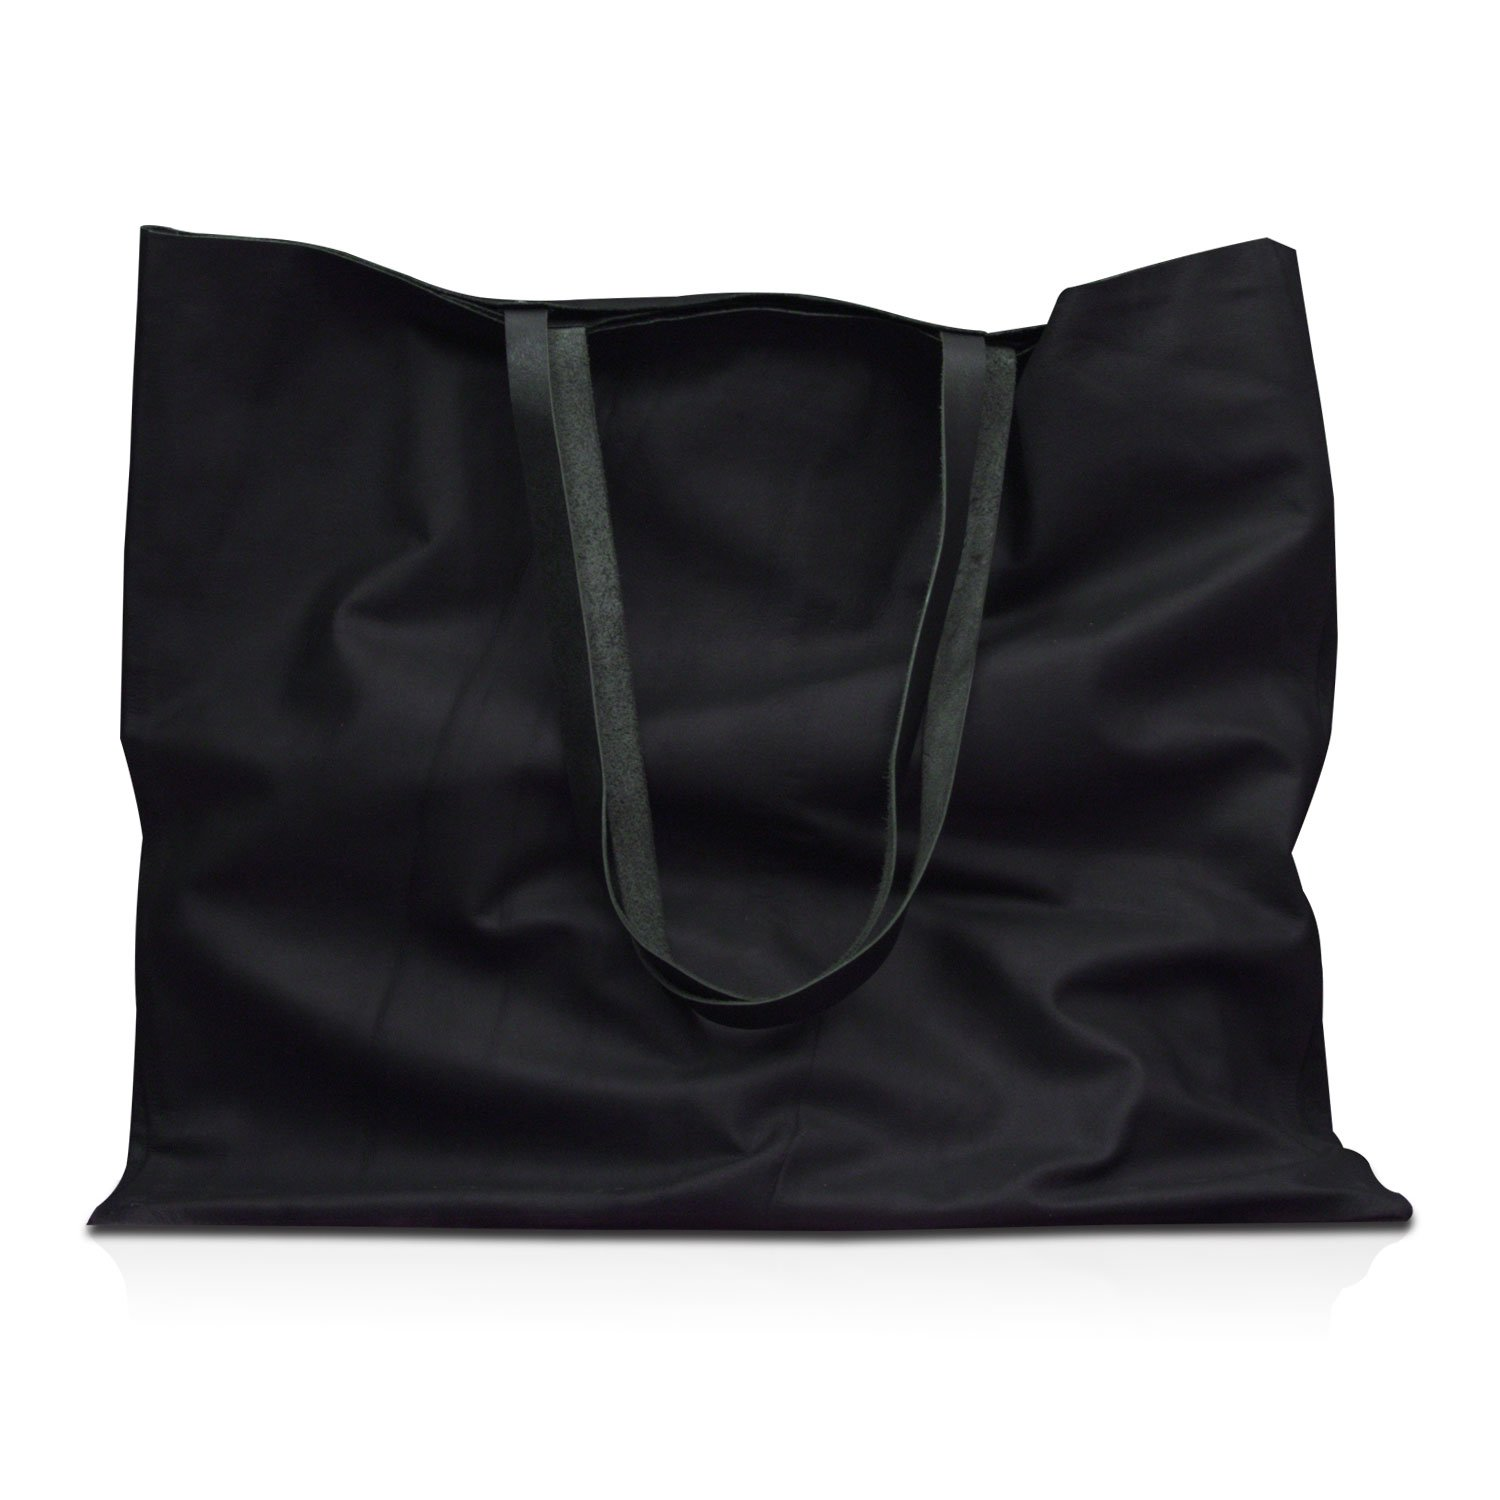 MONT5 Katpana Black Leather Shopping Bag - Multi Purpose Everyday Bag - Market Bag by Xport Designs